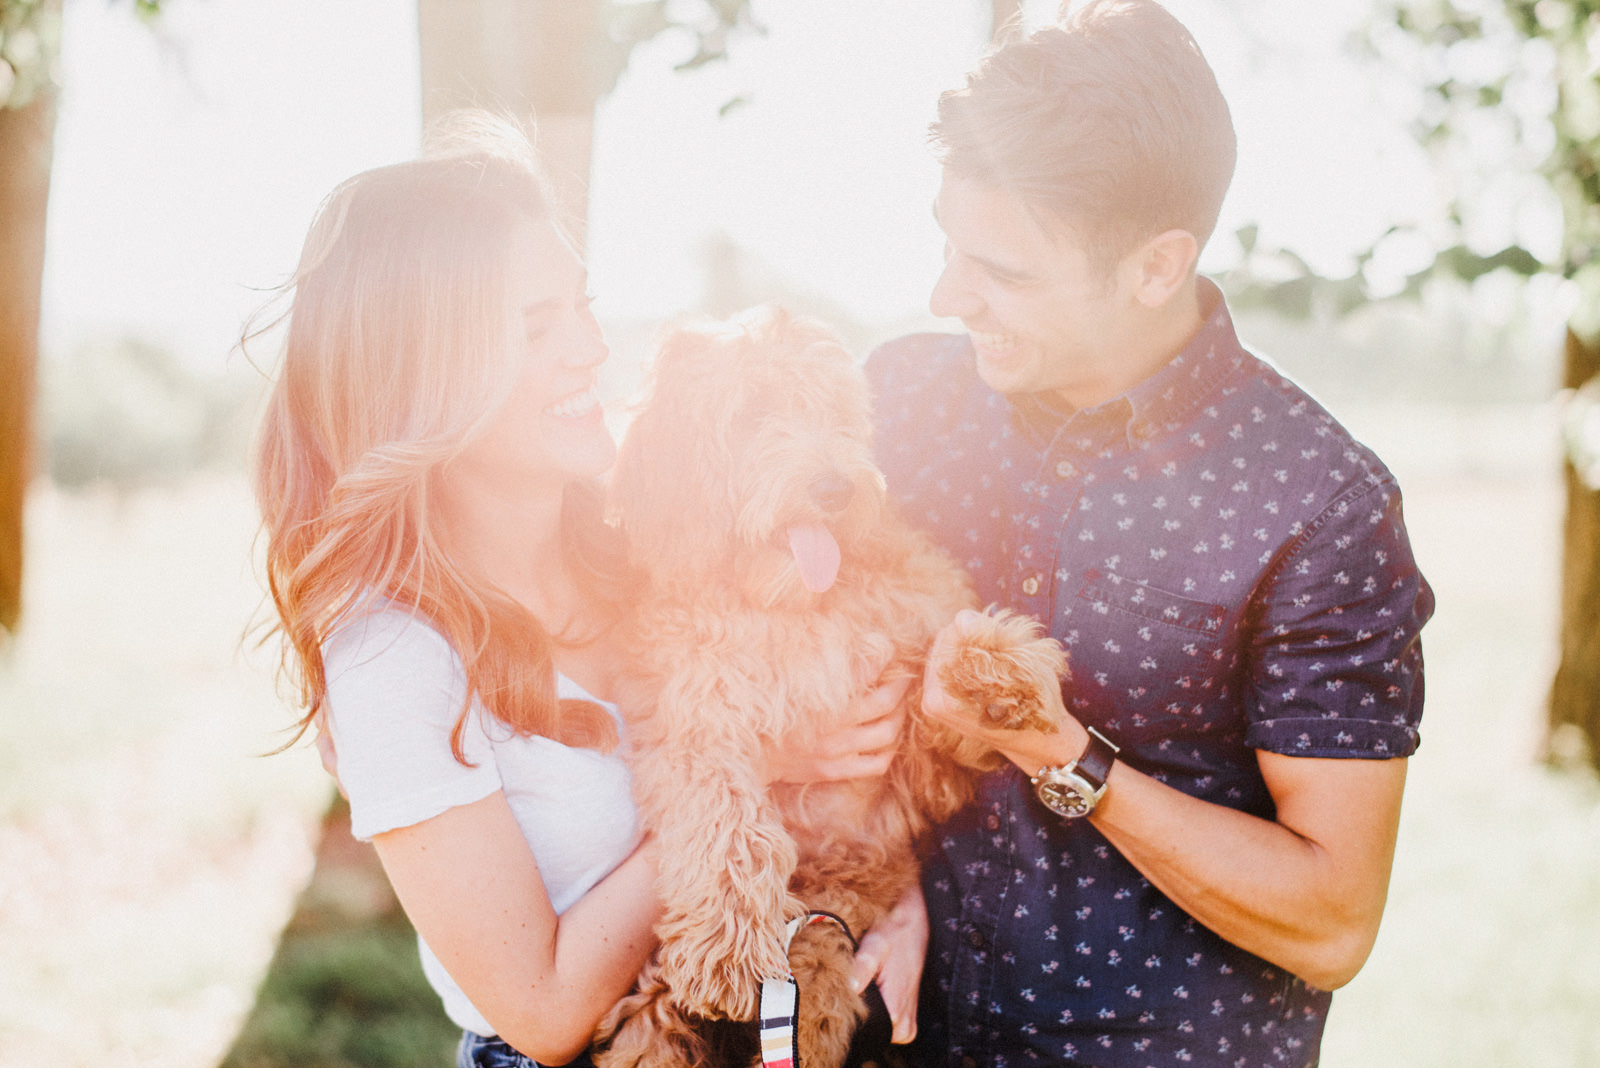 042-summery-engagement-session-with-a-goldendoodle-at-discovery-park-on-film.jpg